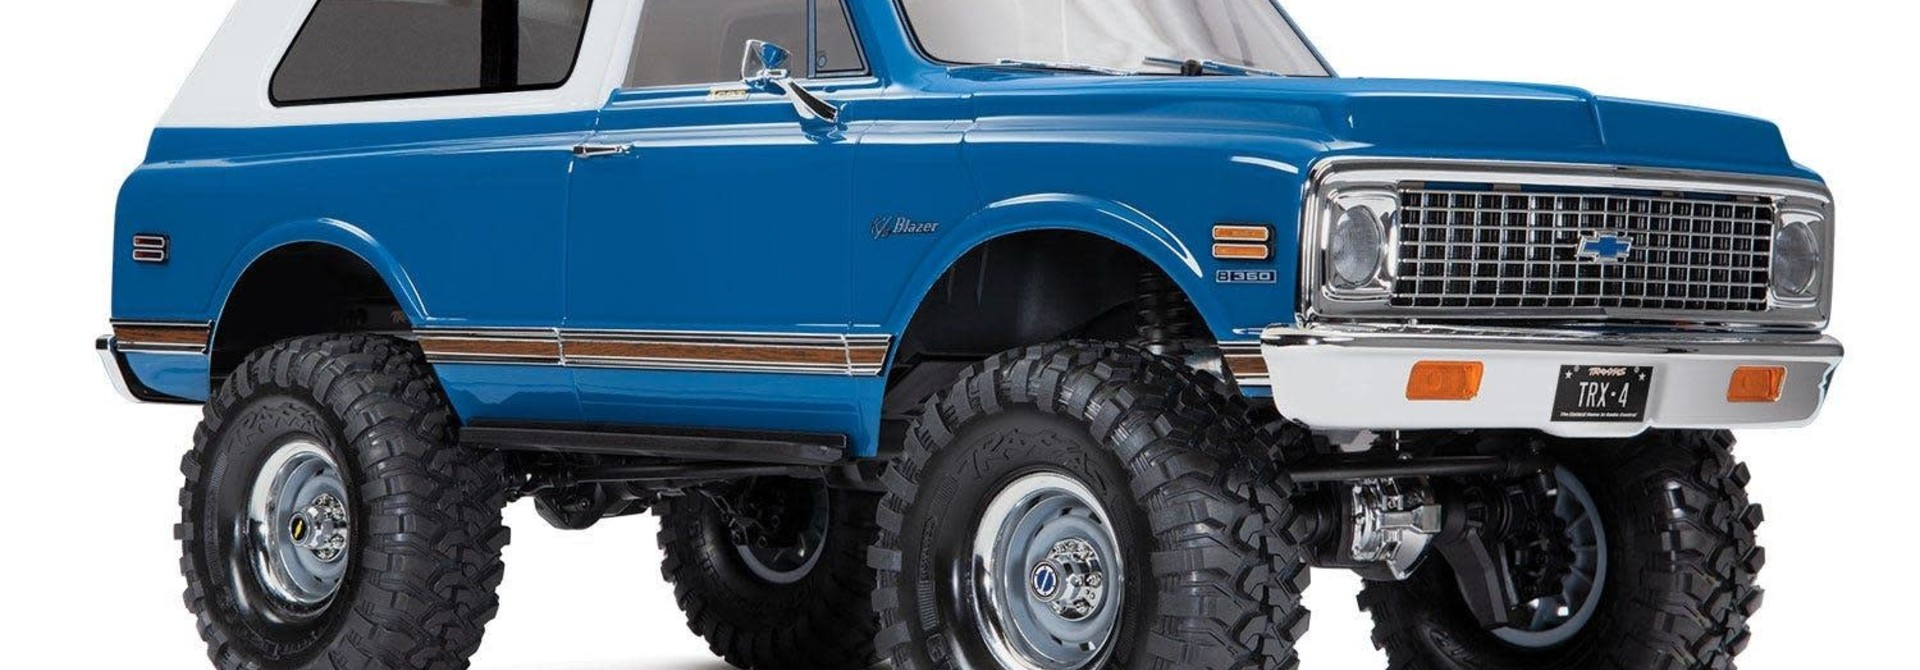 Body, Chevrolet Blazer (1972), complete (blue) (includes grille, side mirrors, door handles, windshield wipers, front & rear bumpers, decals)